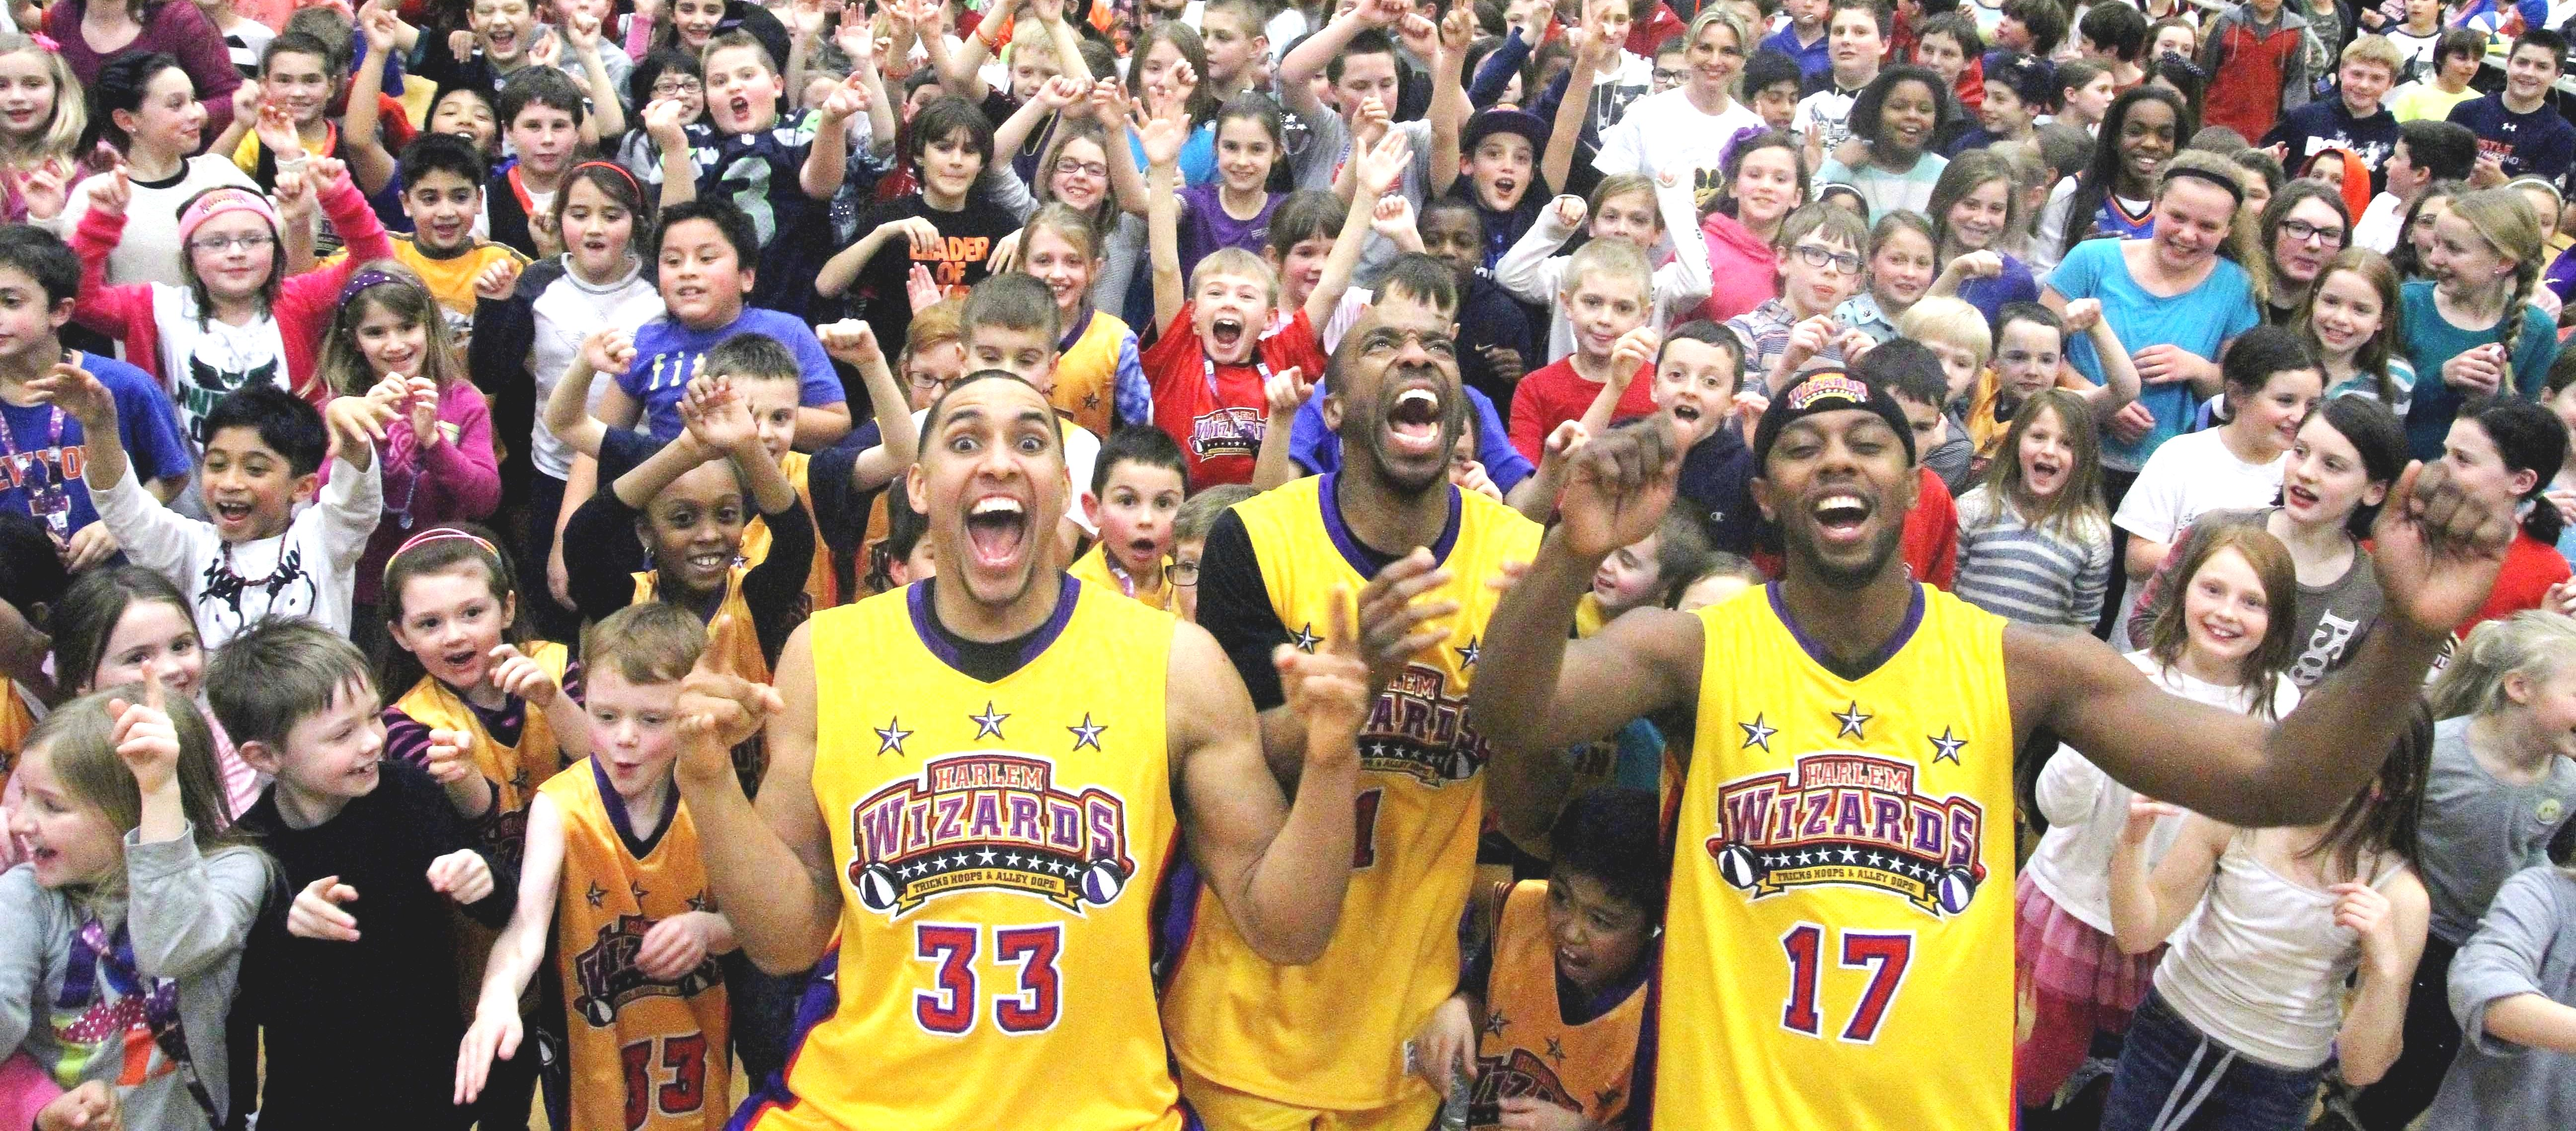 About the The Harlem Wizards